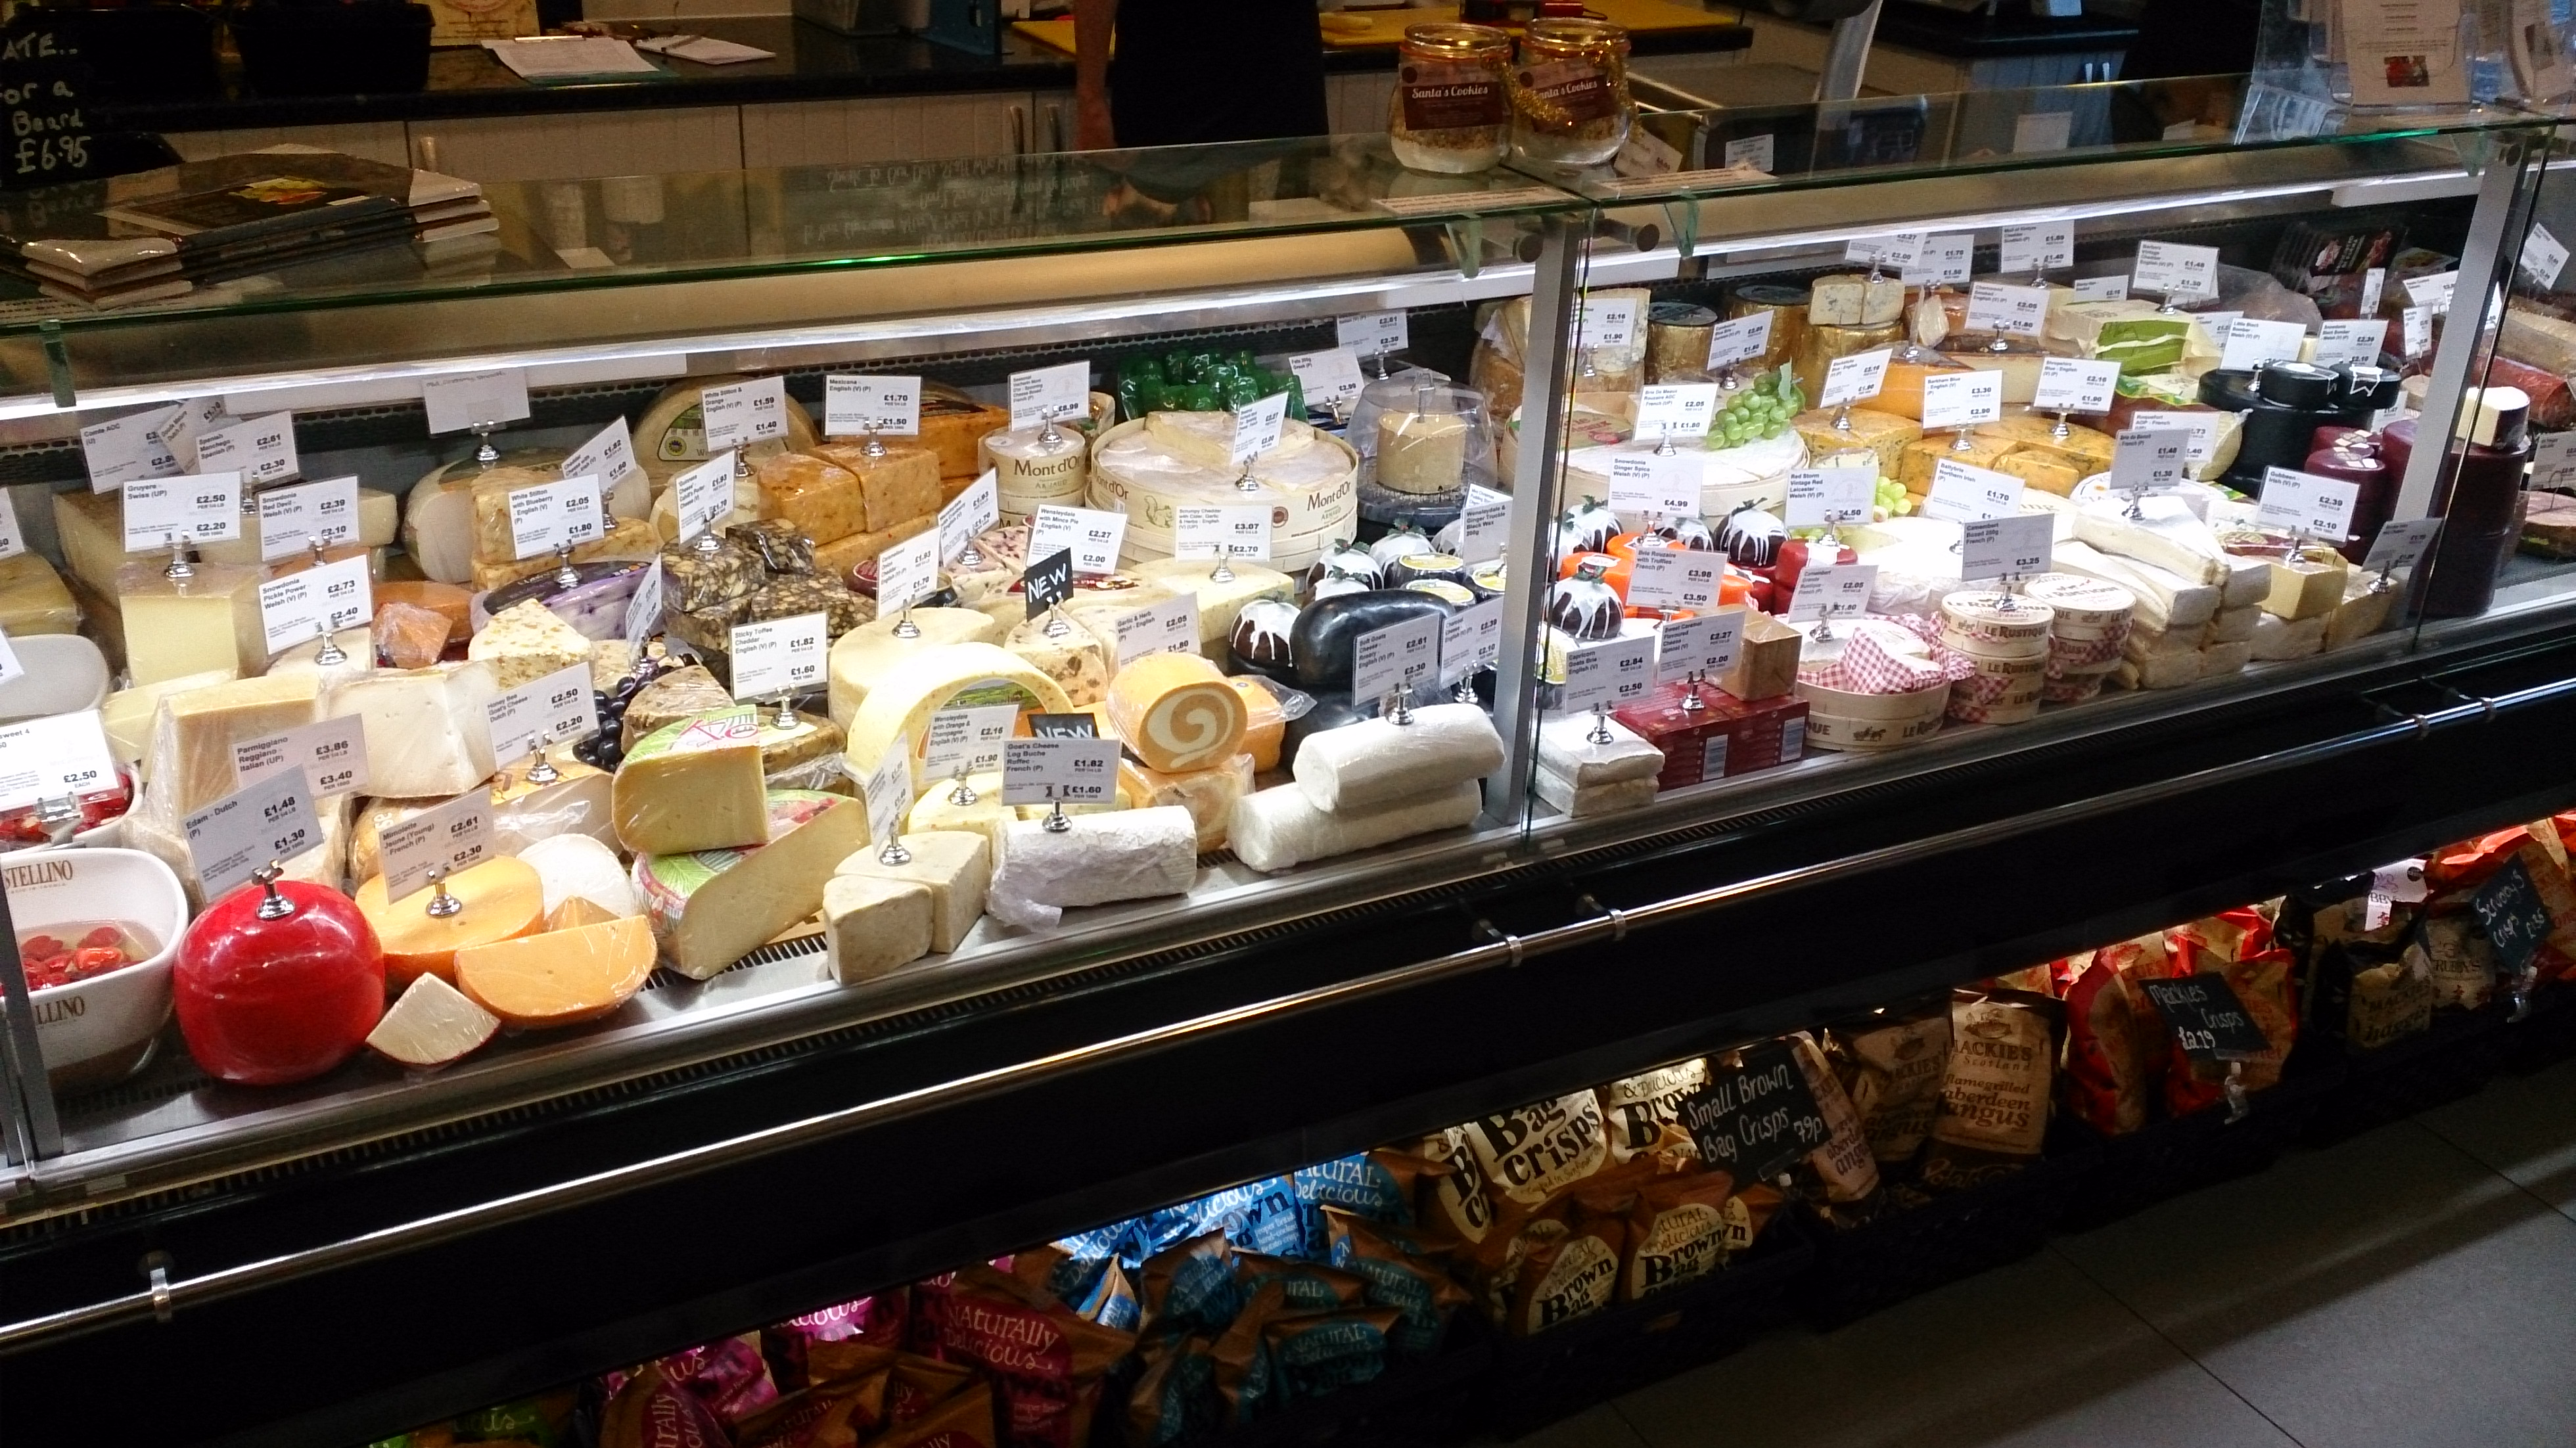 The Cheese Counter